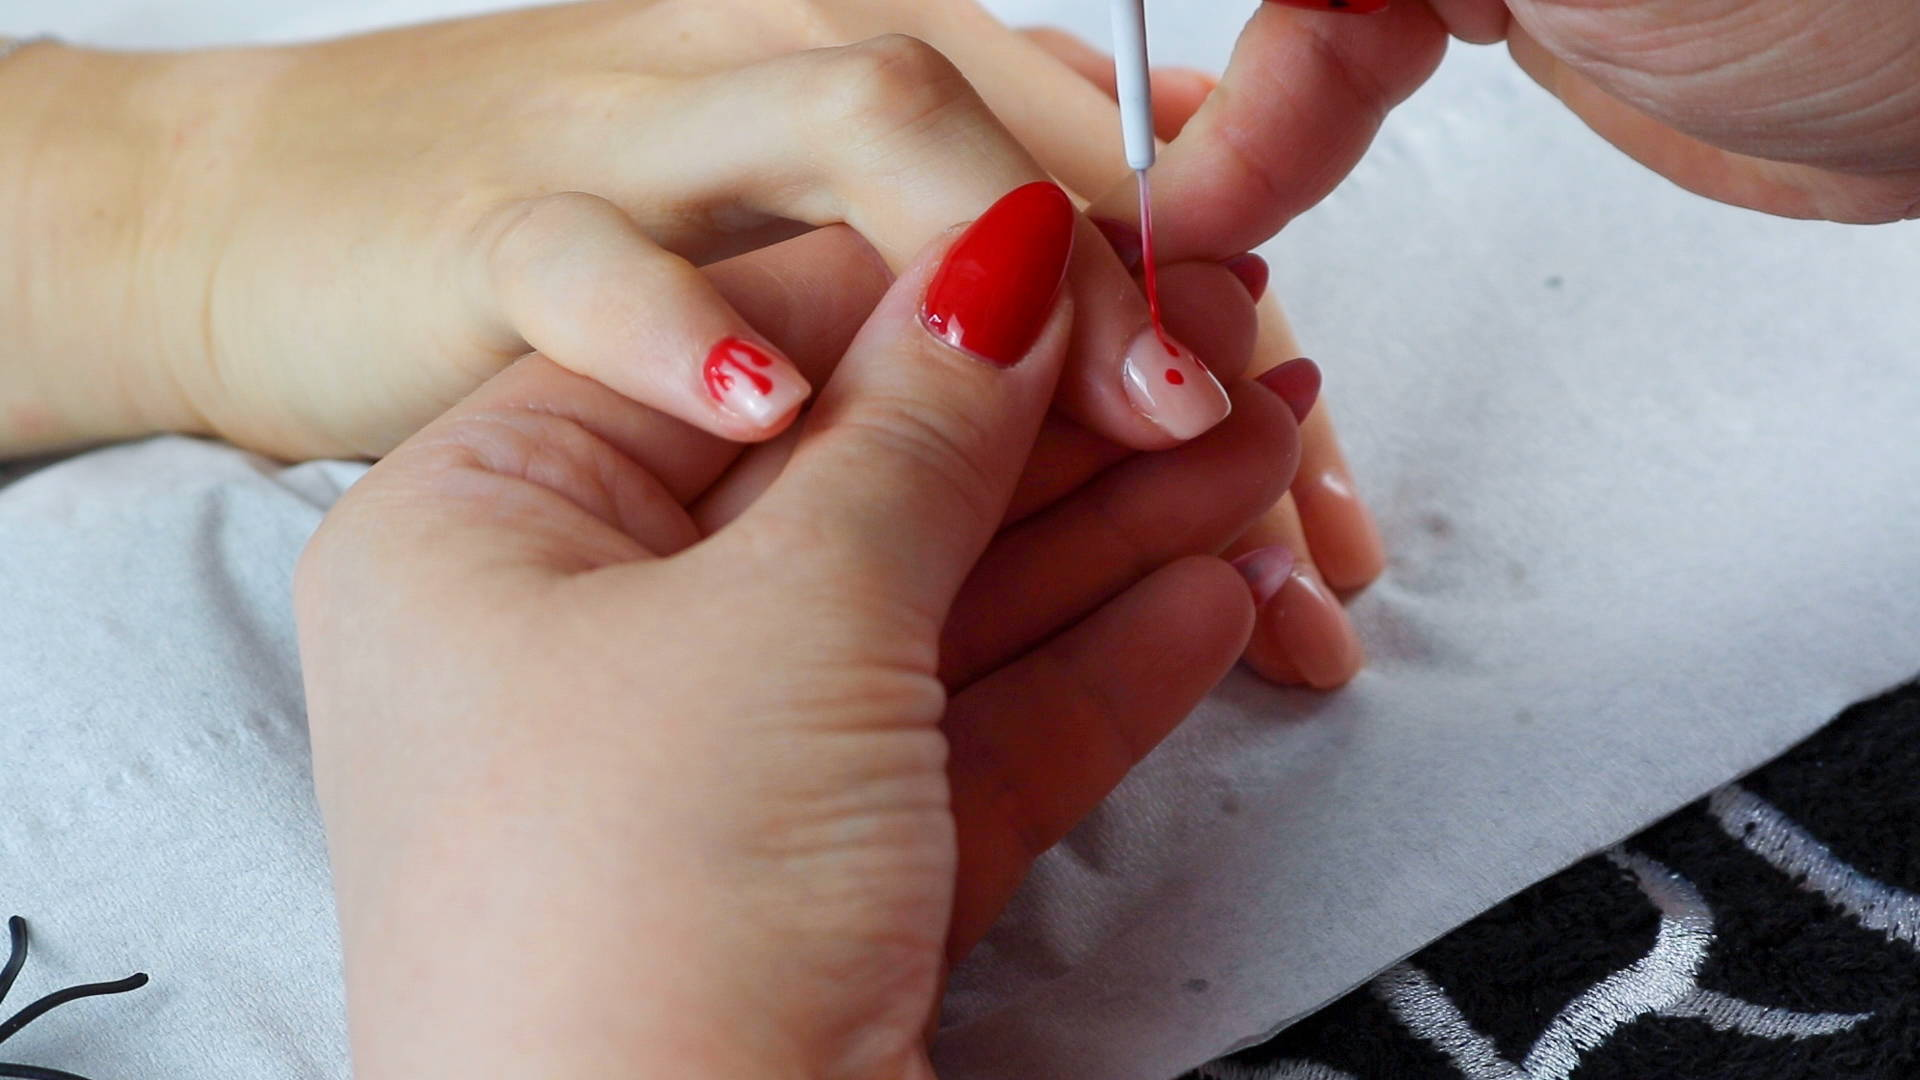 Blood nails detail being added to a nail using a striping brush and ORLY Haute Red